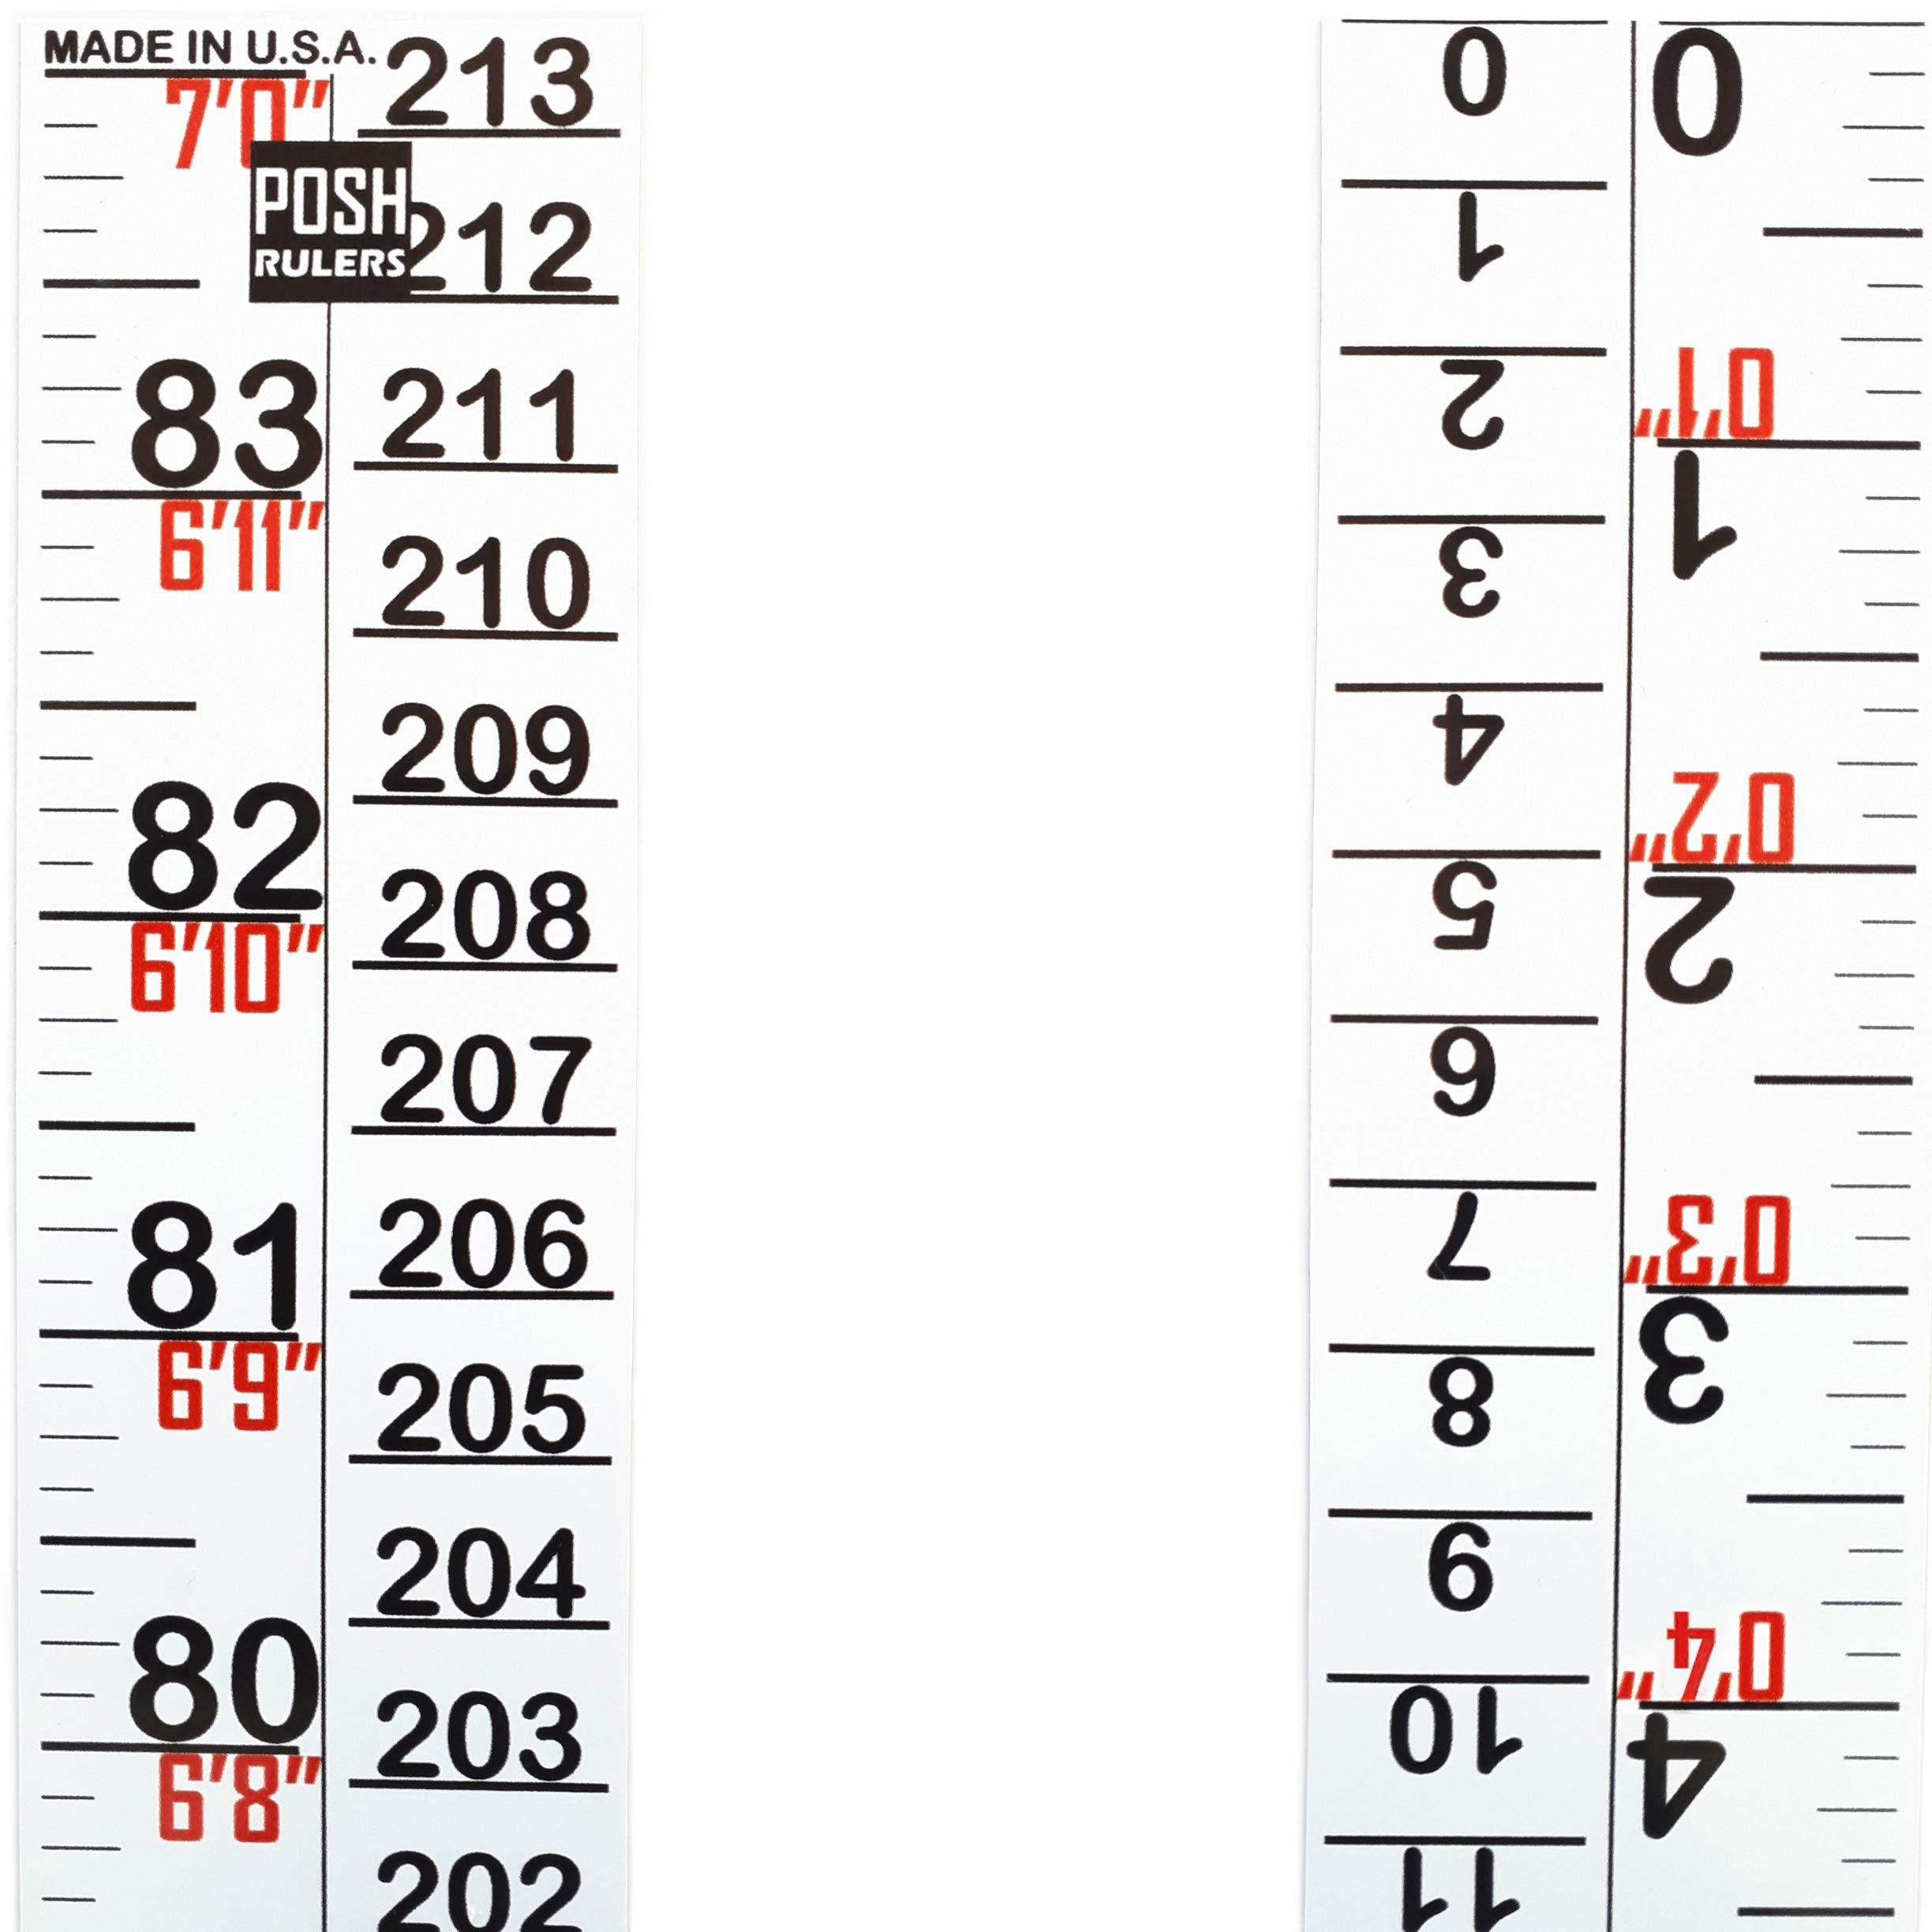 Height Indicator Tape Ruler. Version 2.0. Made in USA. Growth Chart. Height Measure.